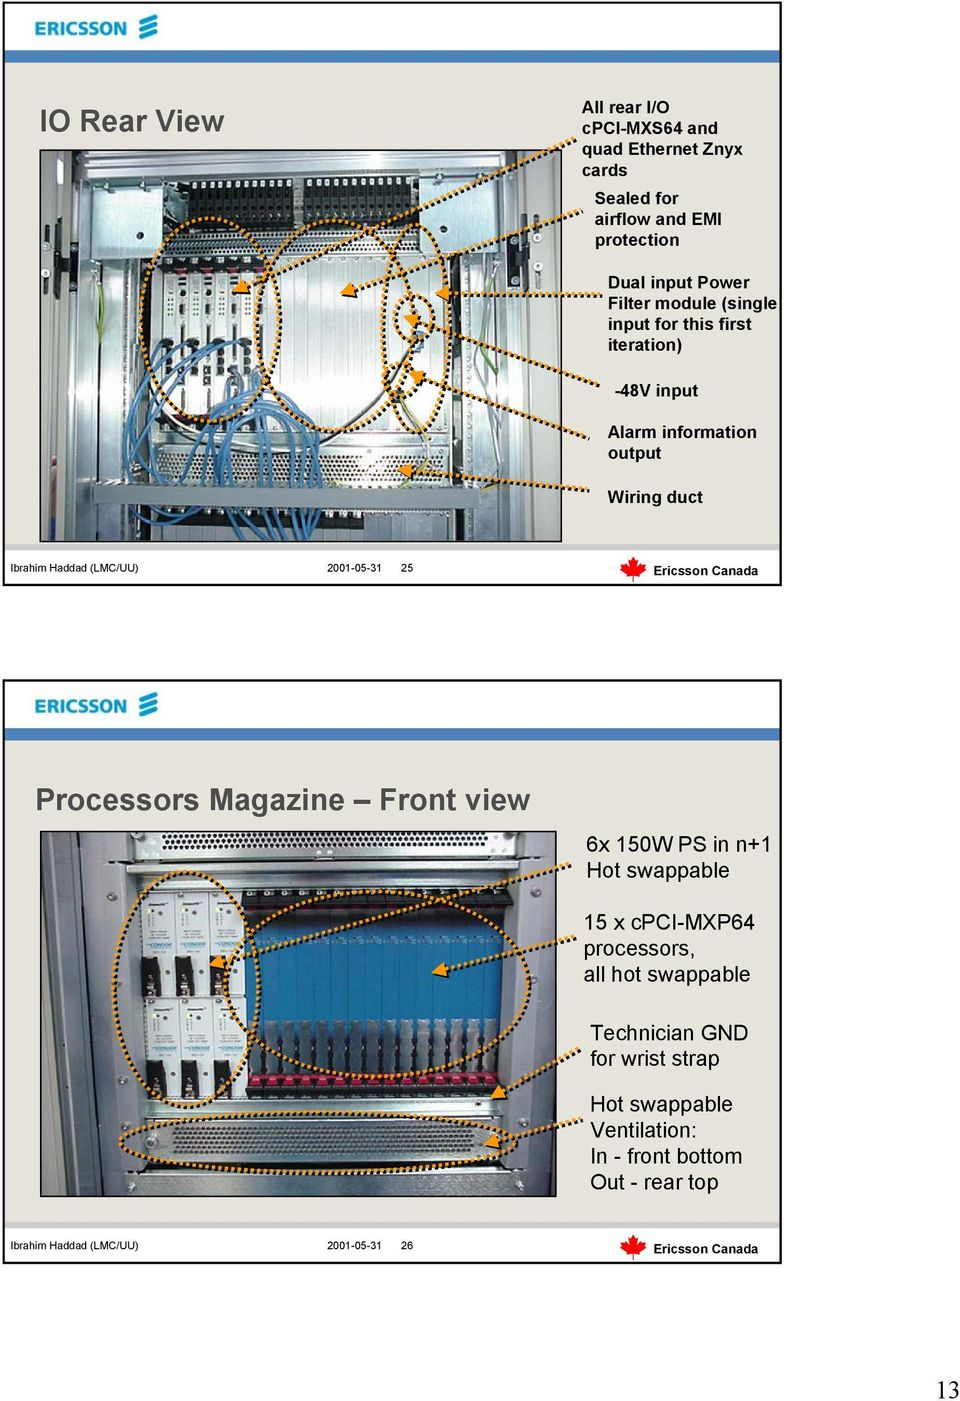 Ericsson Canada Processors Magazine Front view 6x 150W PS in n+1 Hot swappable 15 x cpci-mxp64 processors, all hot